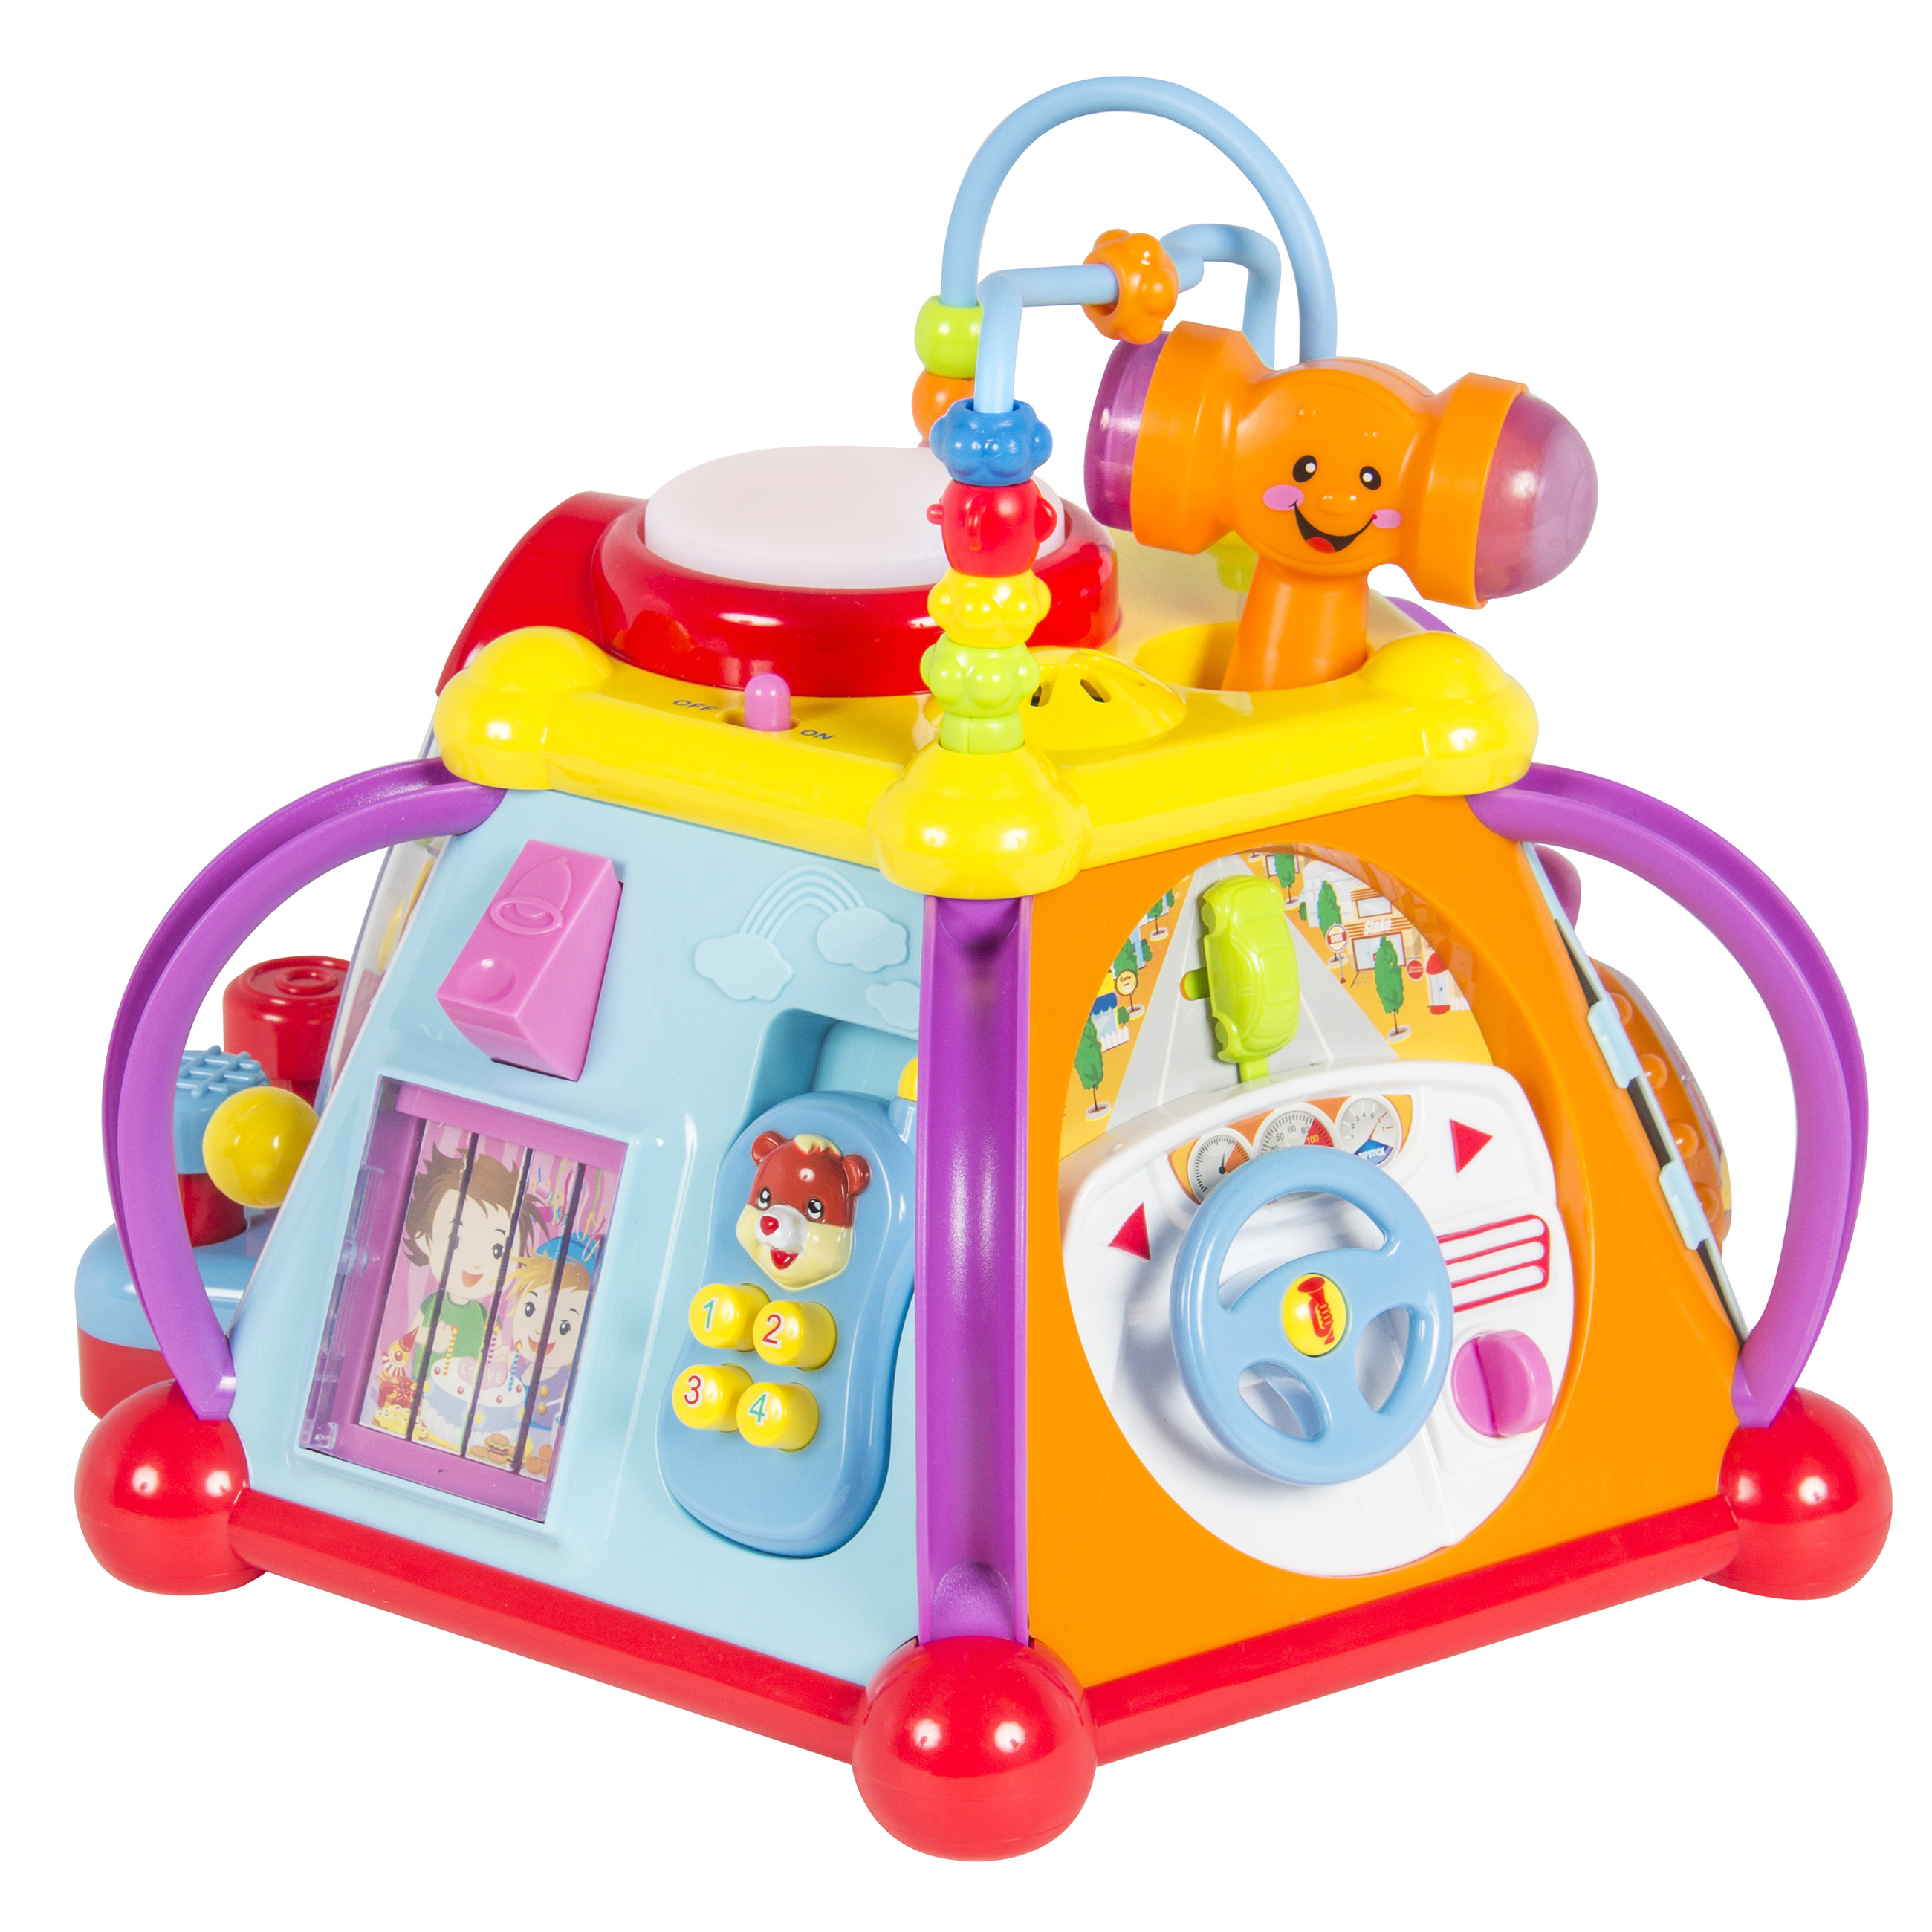 Best Choice Products Kids Toddlers Musical Activity Cube Play Toy w/ 15 Functions, Lights, and Sounds - Multicolor